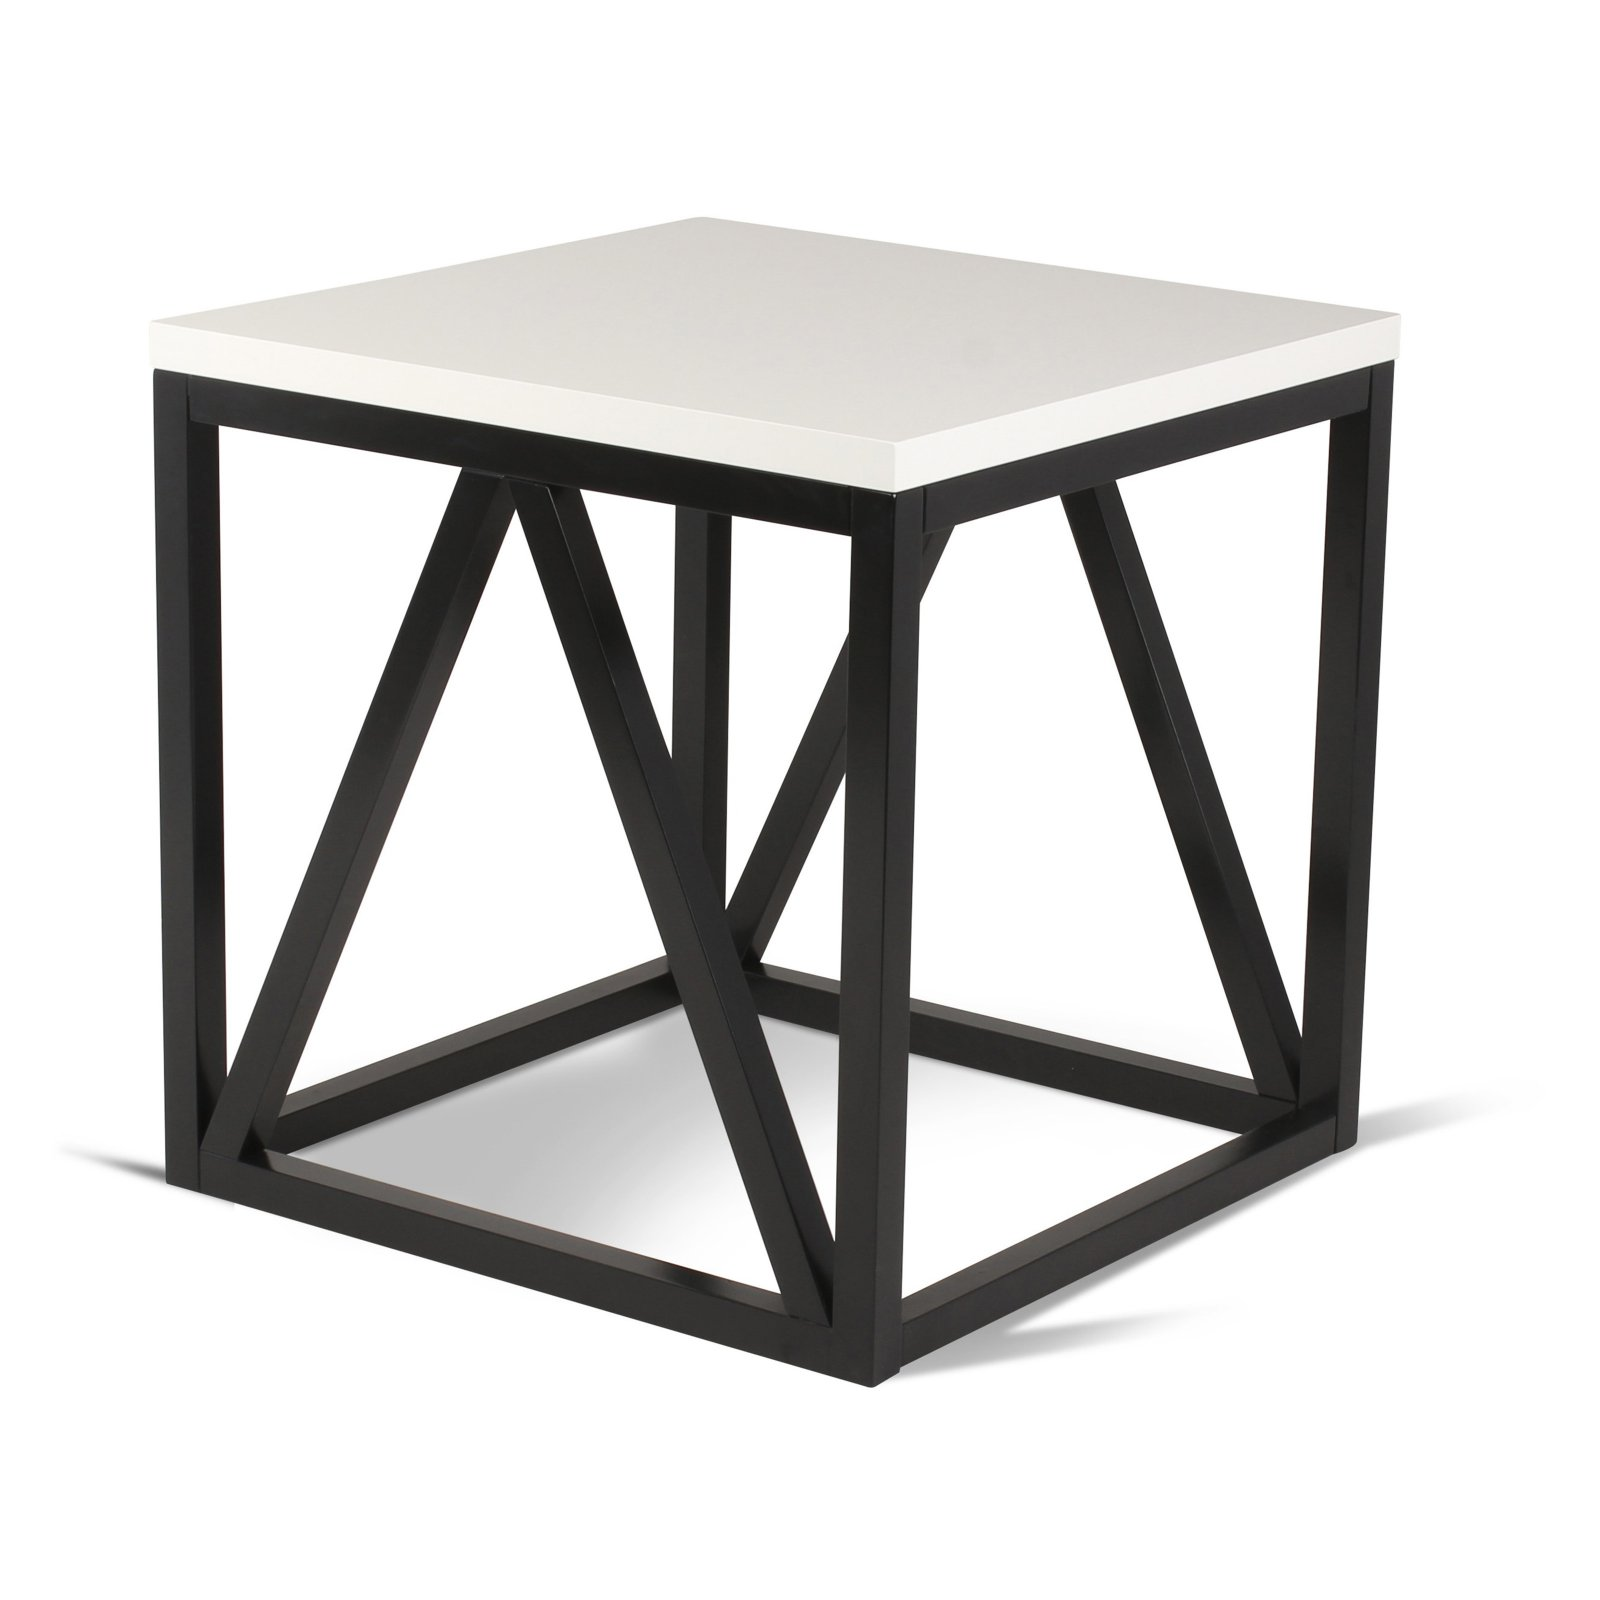 kate and laurel kaya wood cube side table products black end distressed oak coffee small with drawers large double dog crate round nic broyhill floral sofa circle nightstand